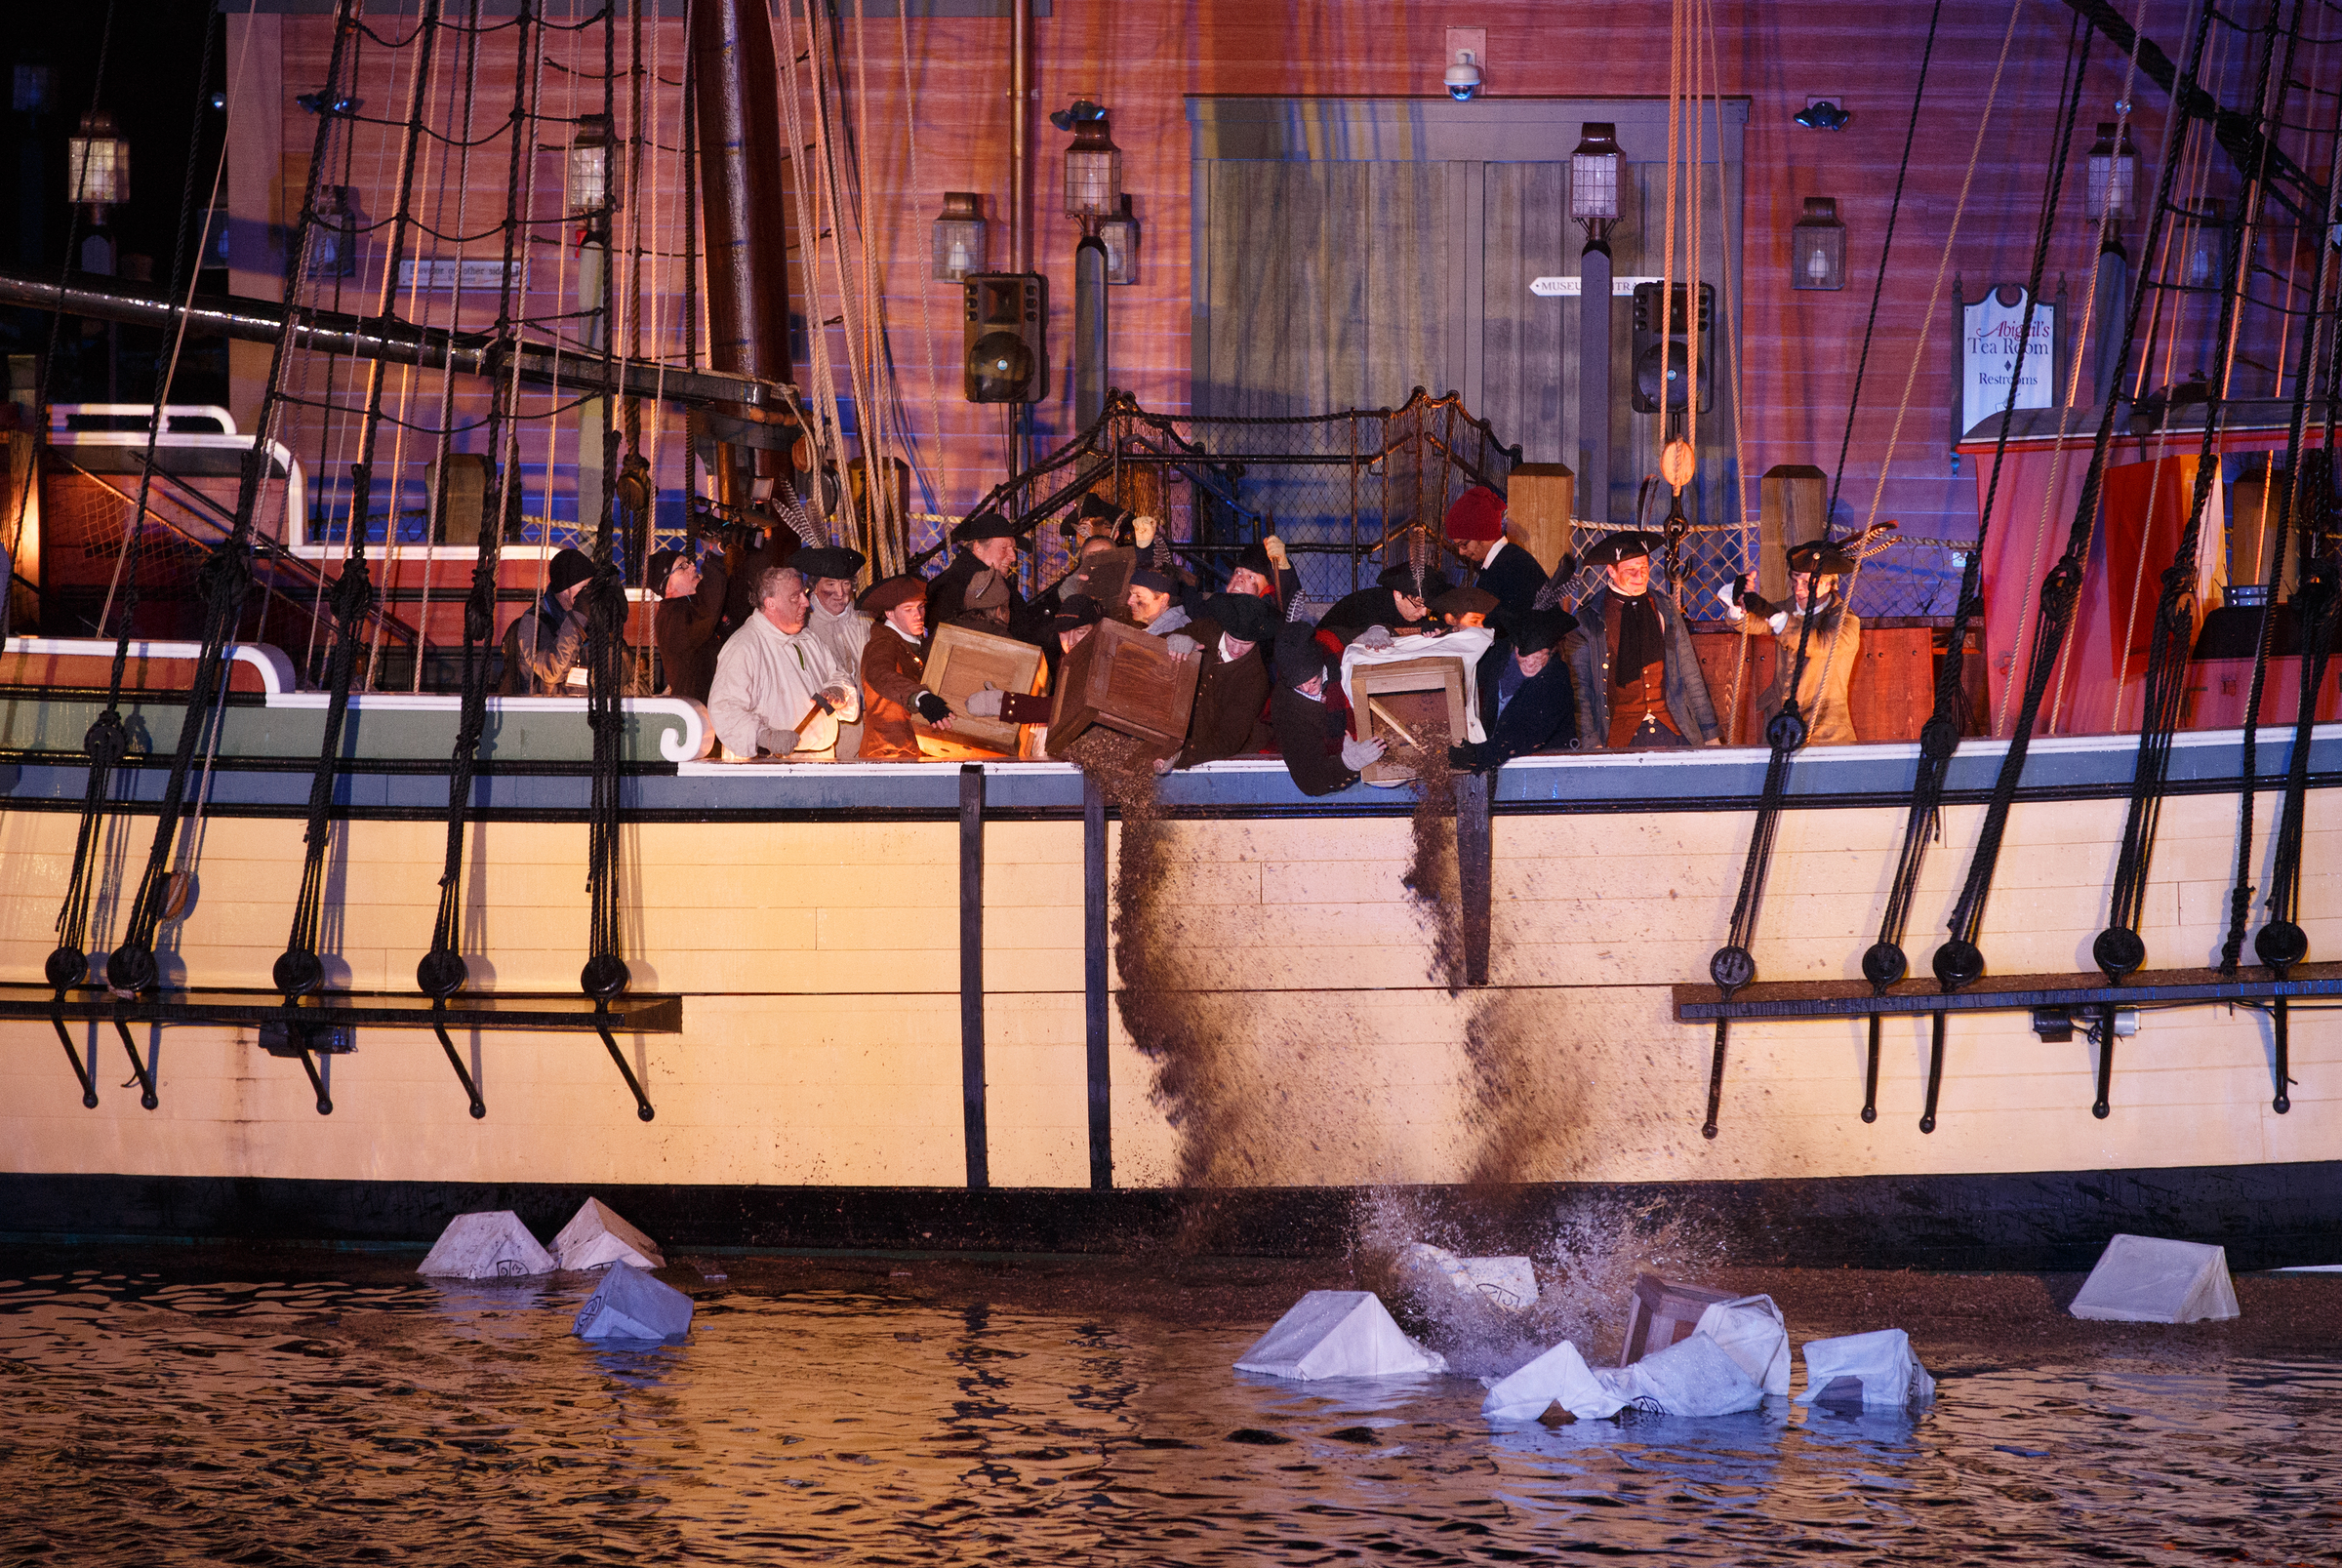 House Building Program Press Releases And News About The Boston Tea Party Museum